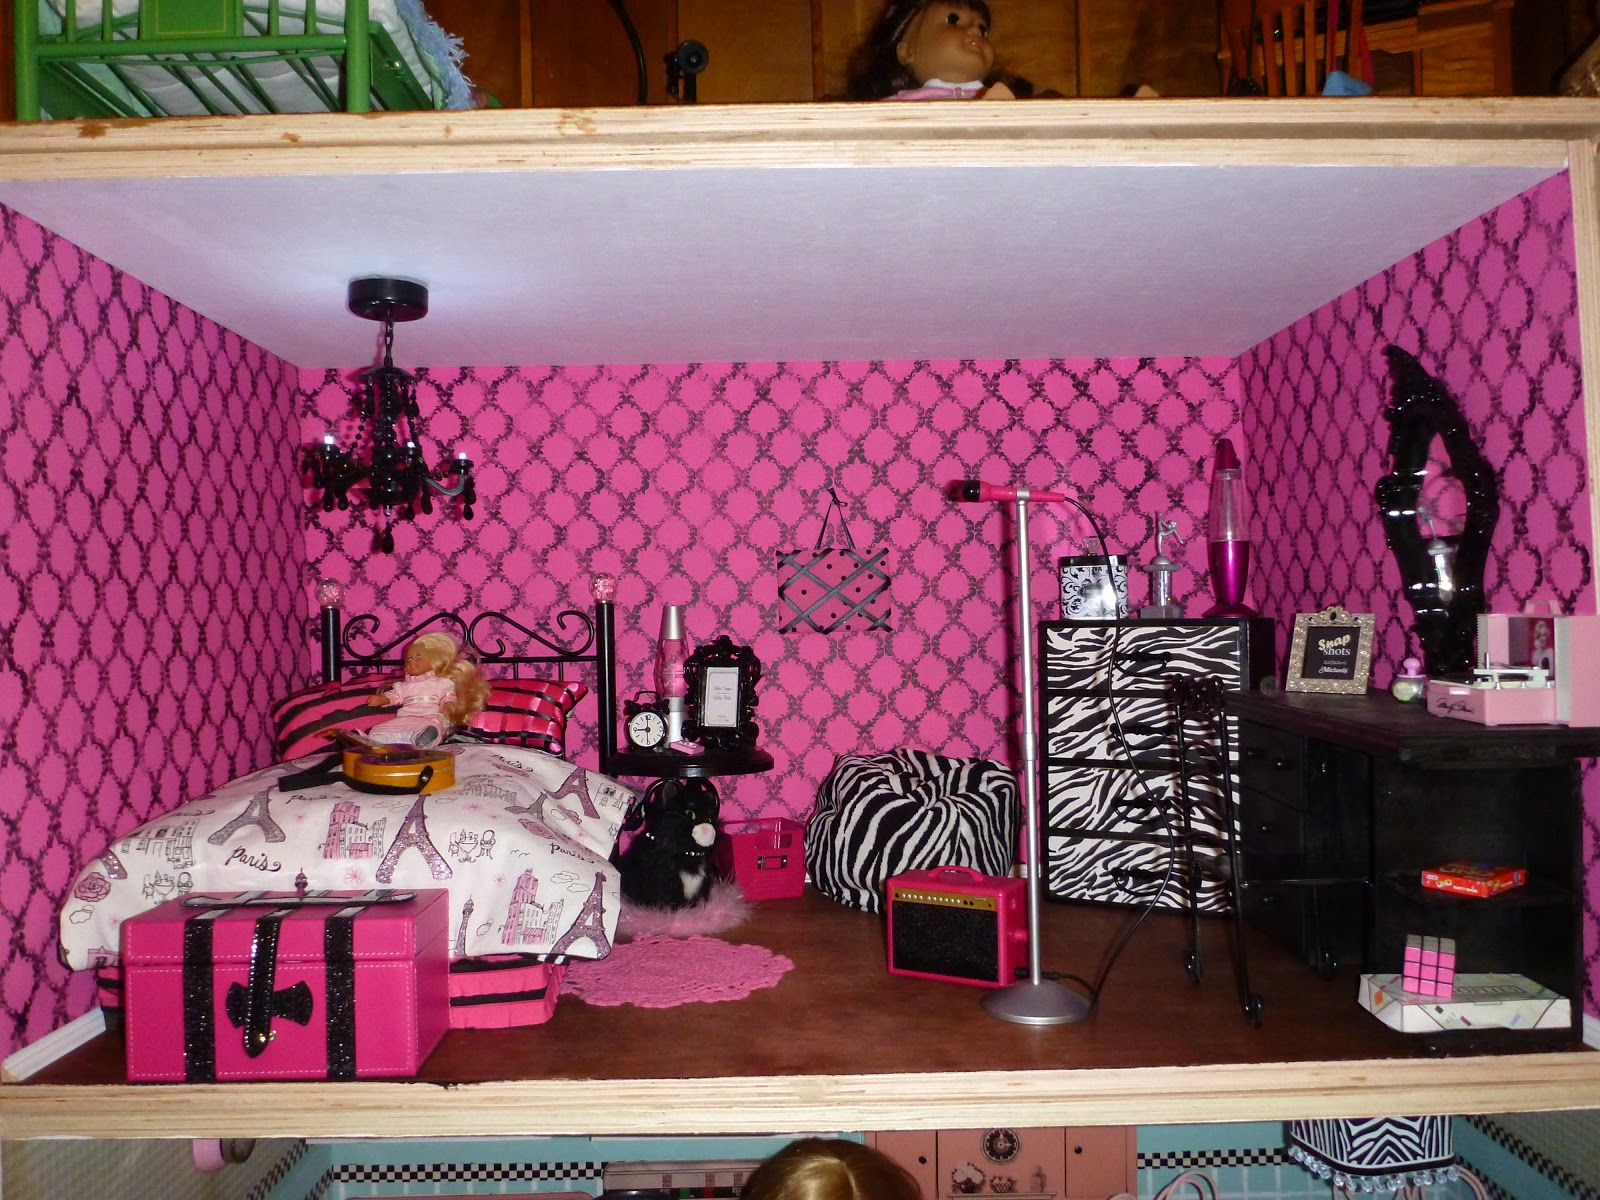 Carrie s inspiration american girl doll house for Dollhouse bedroom ideas